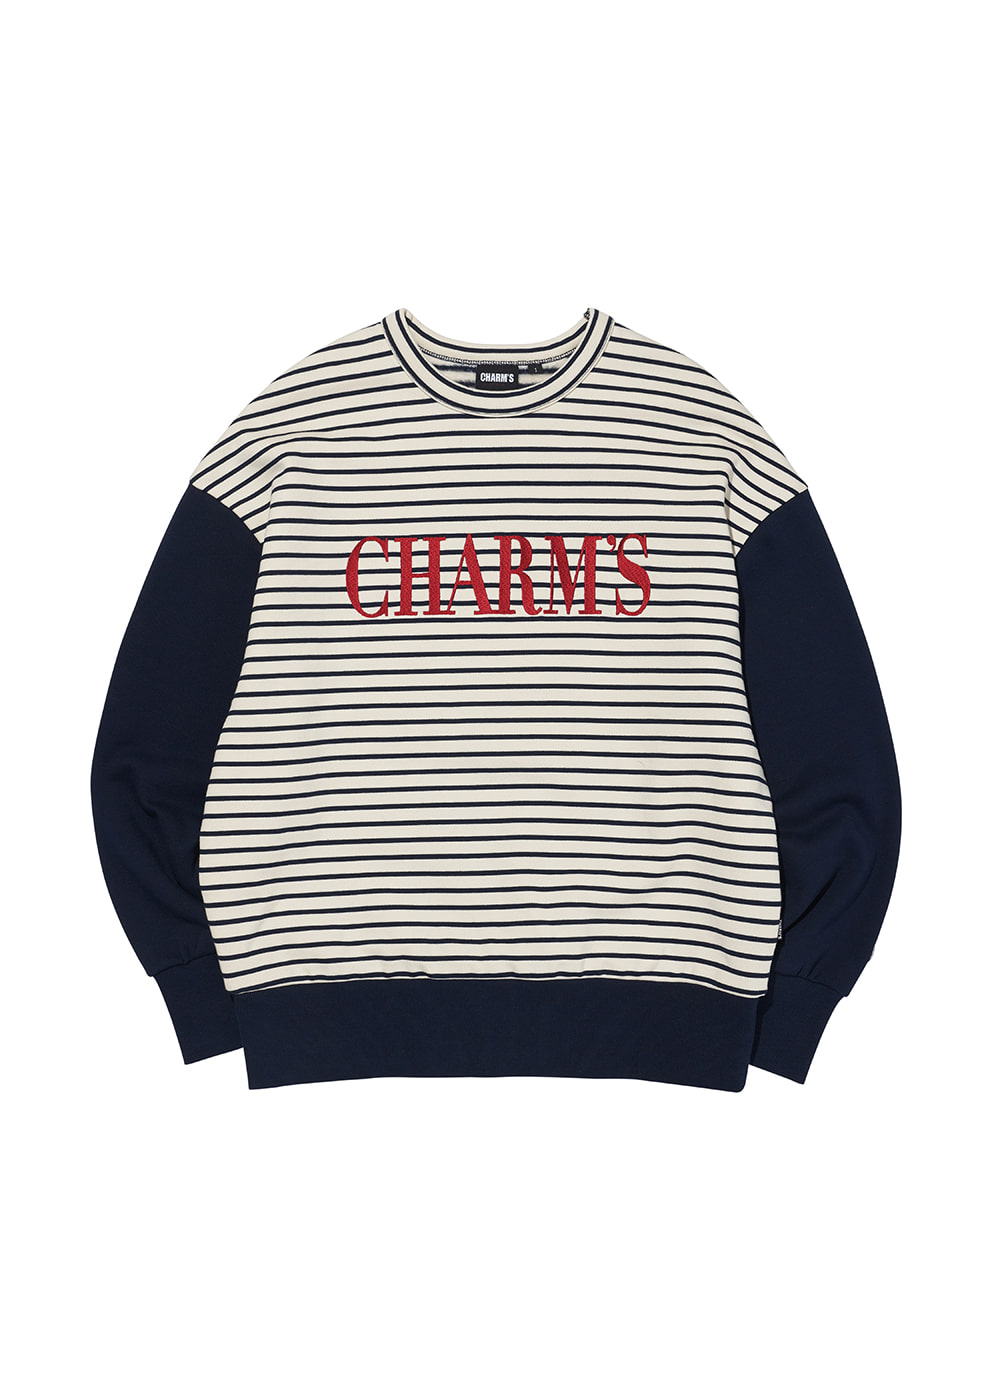 CHARMS STRIPE LOGO SWEATSHIRTS IV